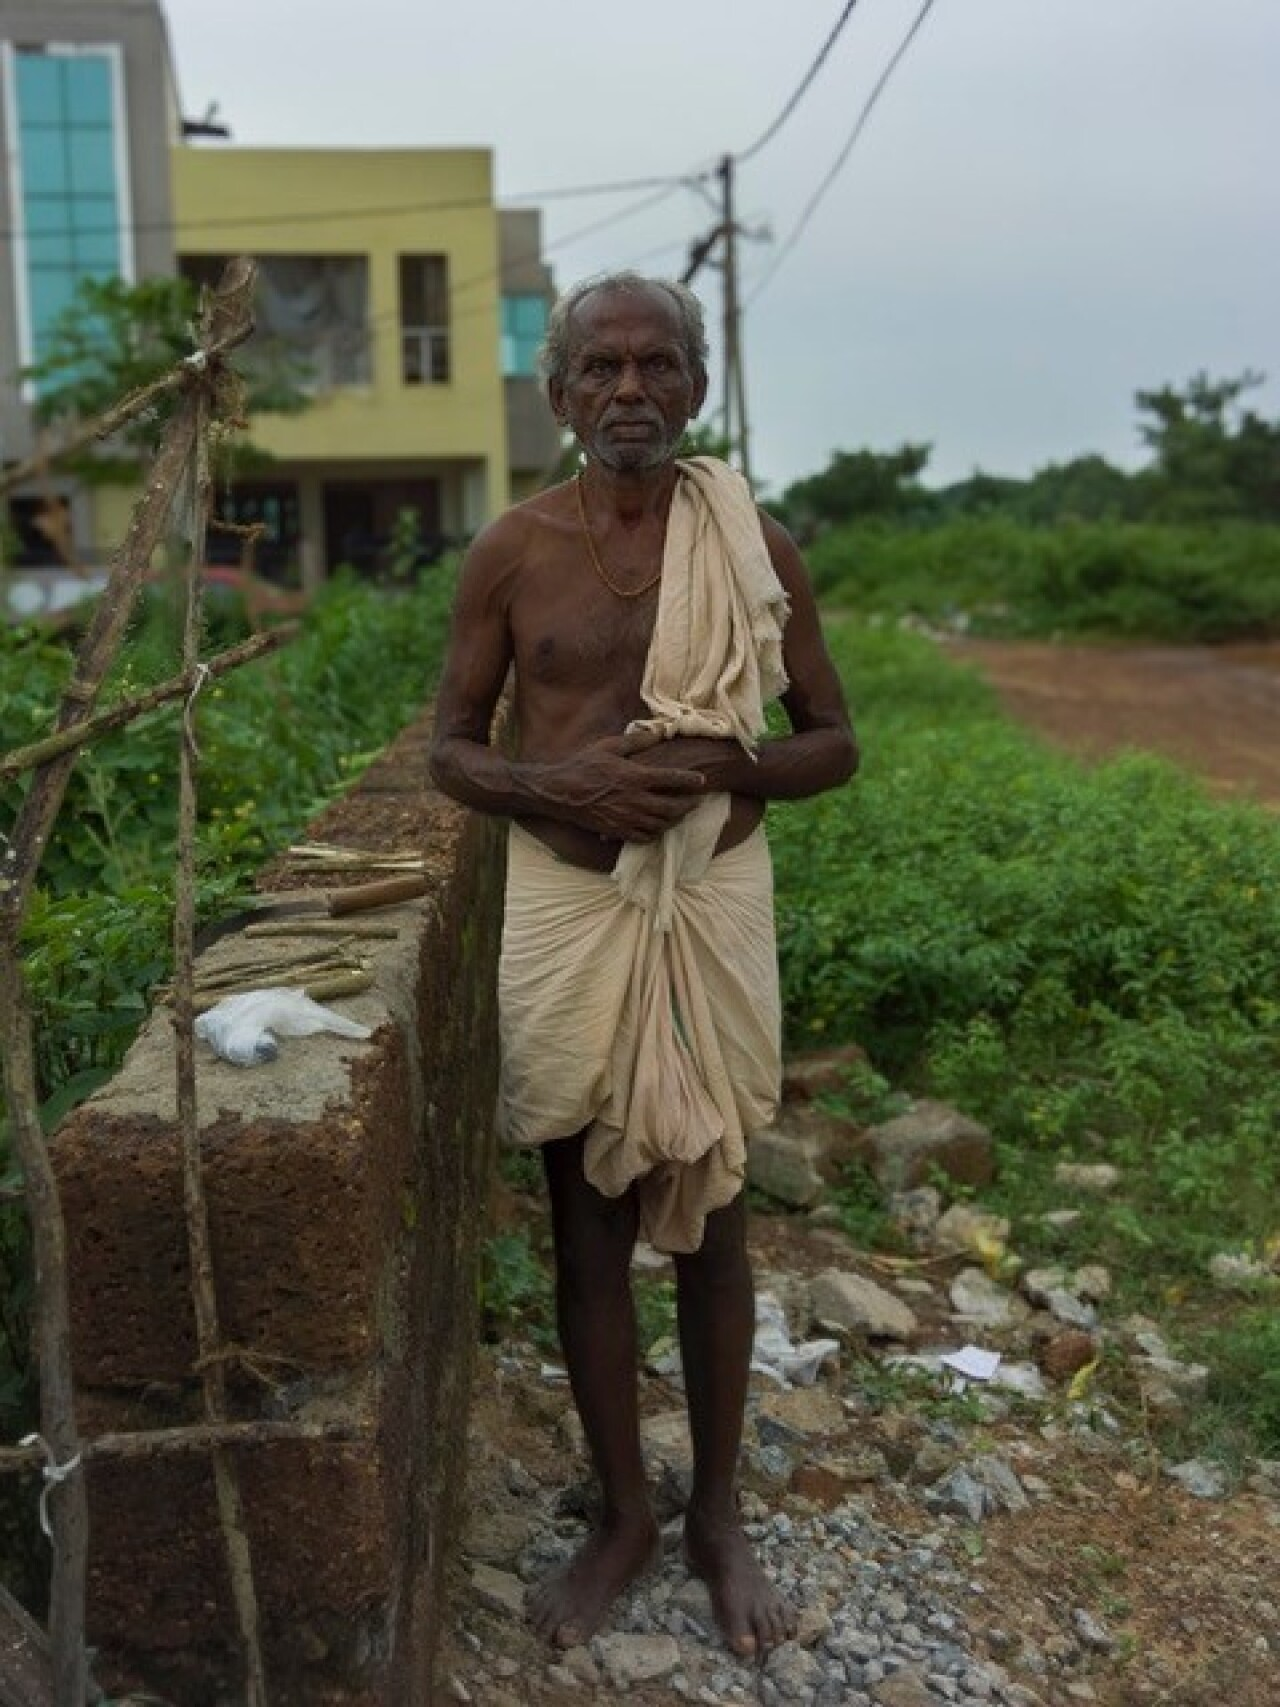 An older man in a dhoti with one hand on top of another looking at the camera standing on a small lading of rocks between a brick wall and open grass, dirt, and shrubbery laden field. In the background are small two level homes.